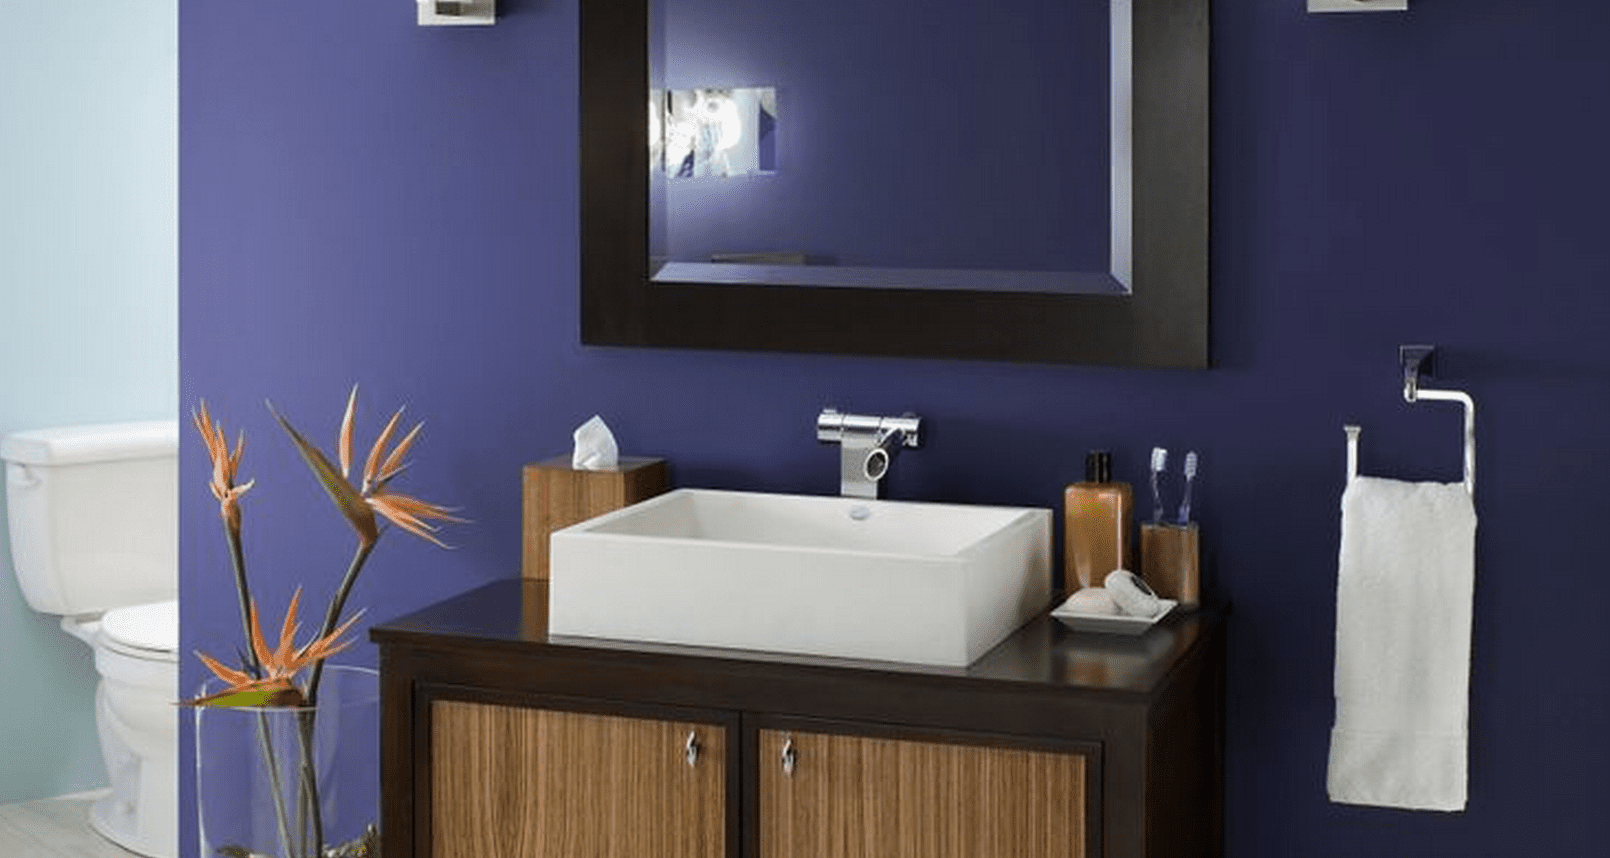 small bathroom paint colors The Best Paint Colors for a Small Bathroom small bathroom paint colors